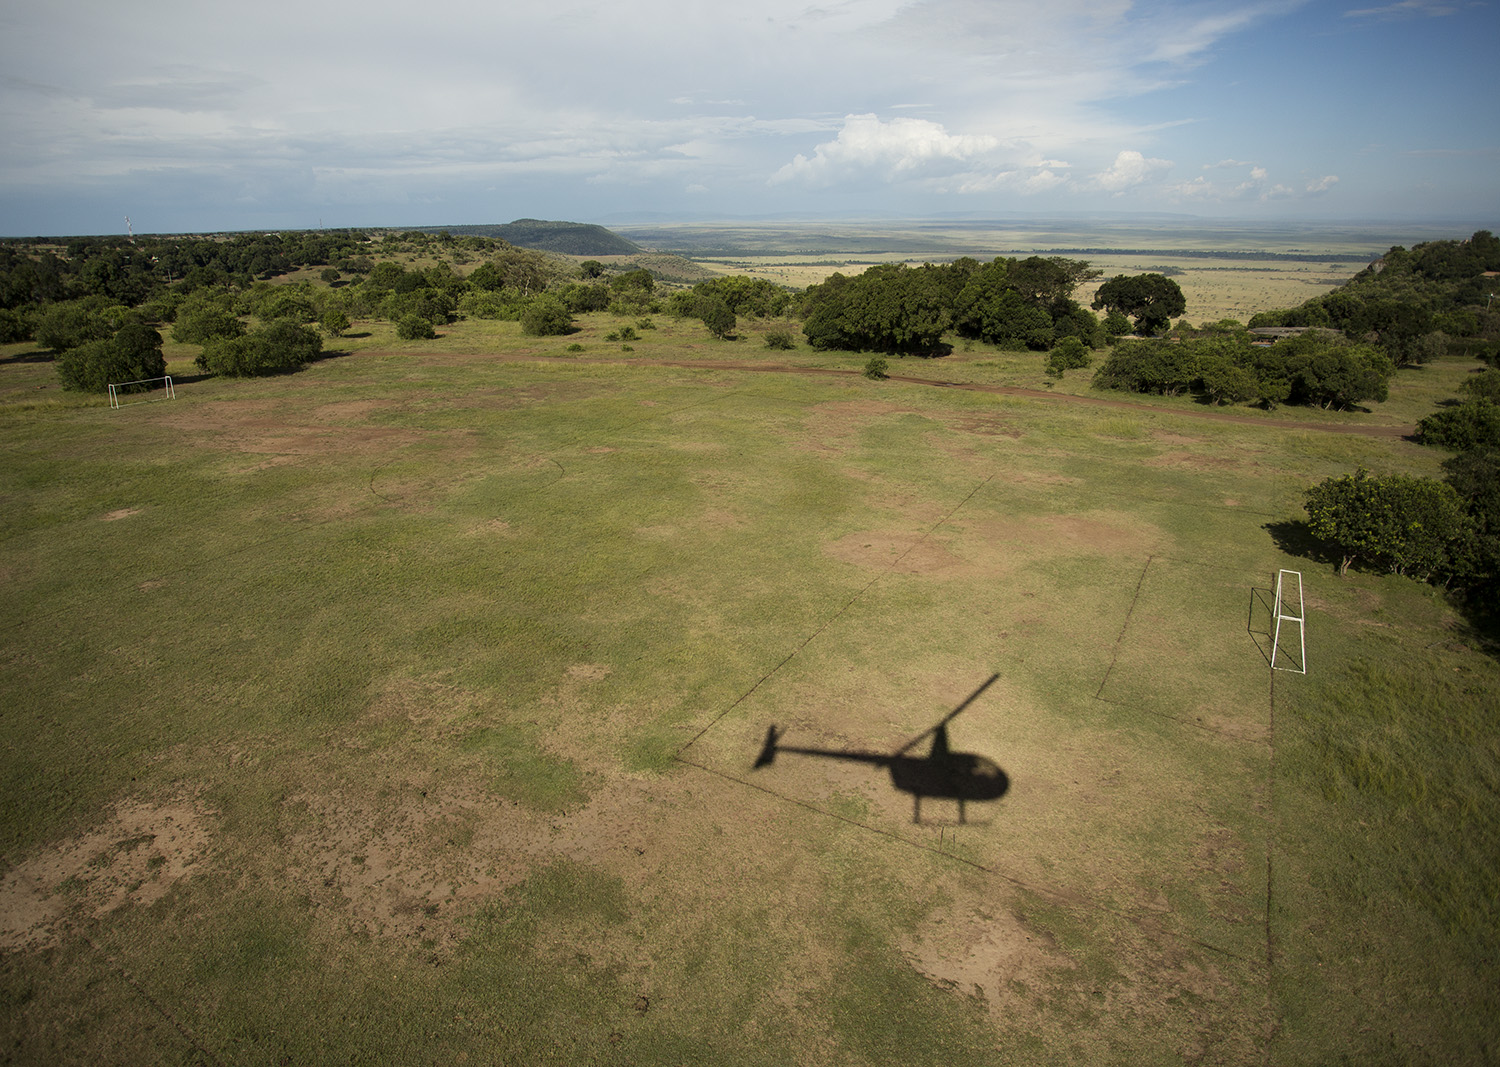 Helicopter football pitch